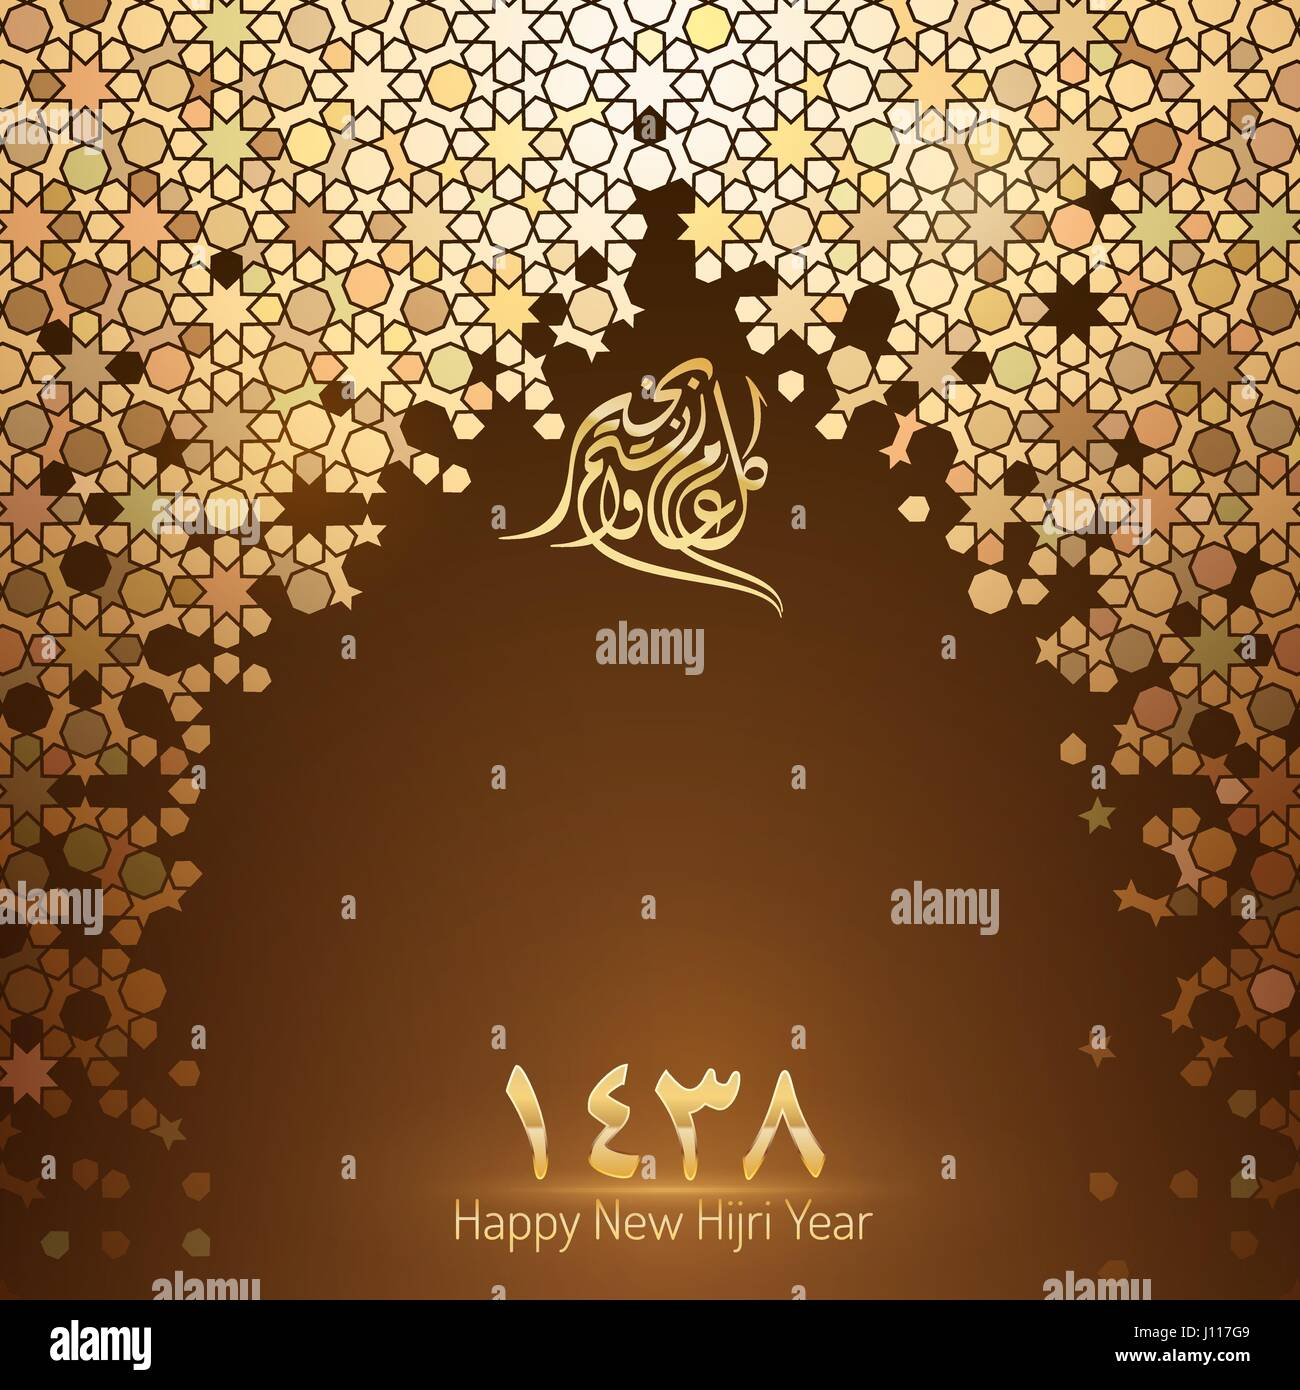 Islamic new hijri year 1438 vector greeting card template stock islamic new hijri year 1438 vector greeting card template m4hsunfo